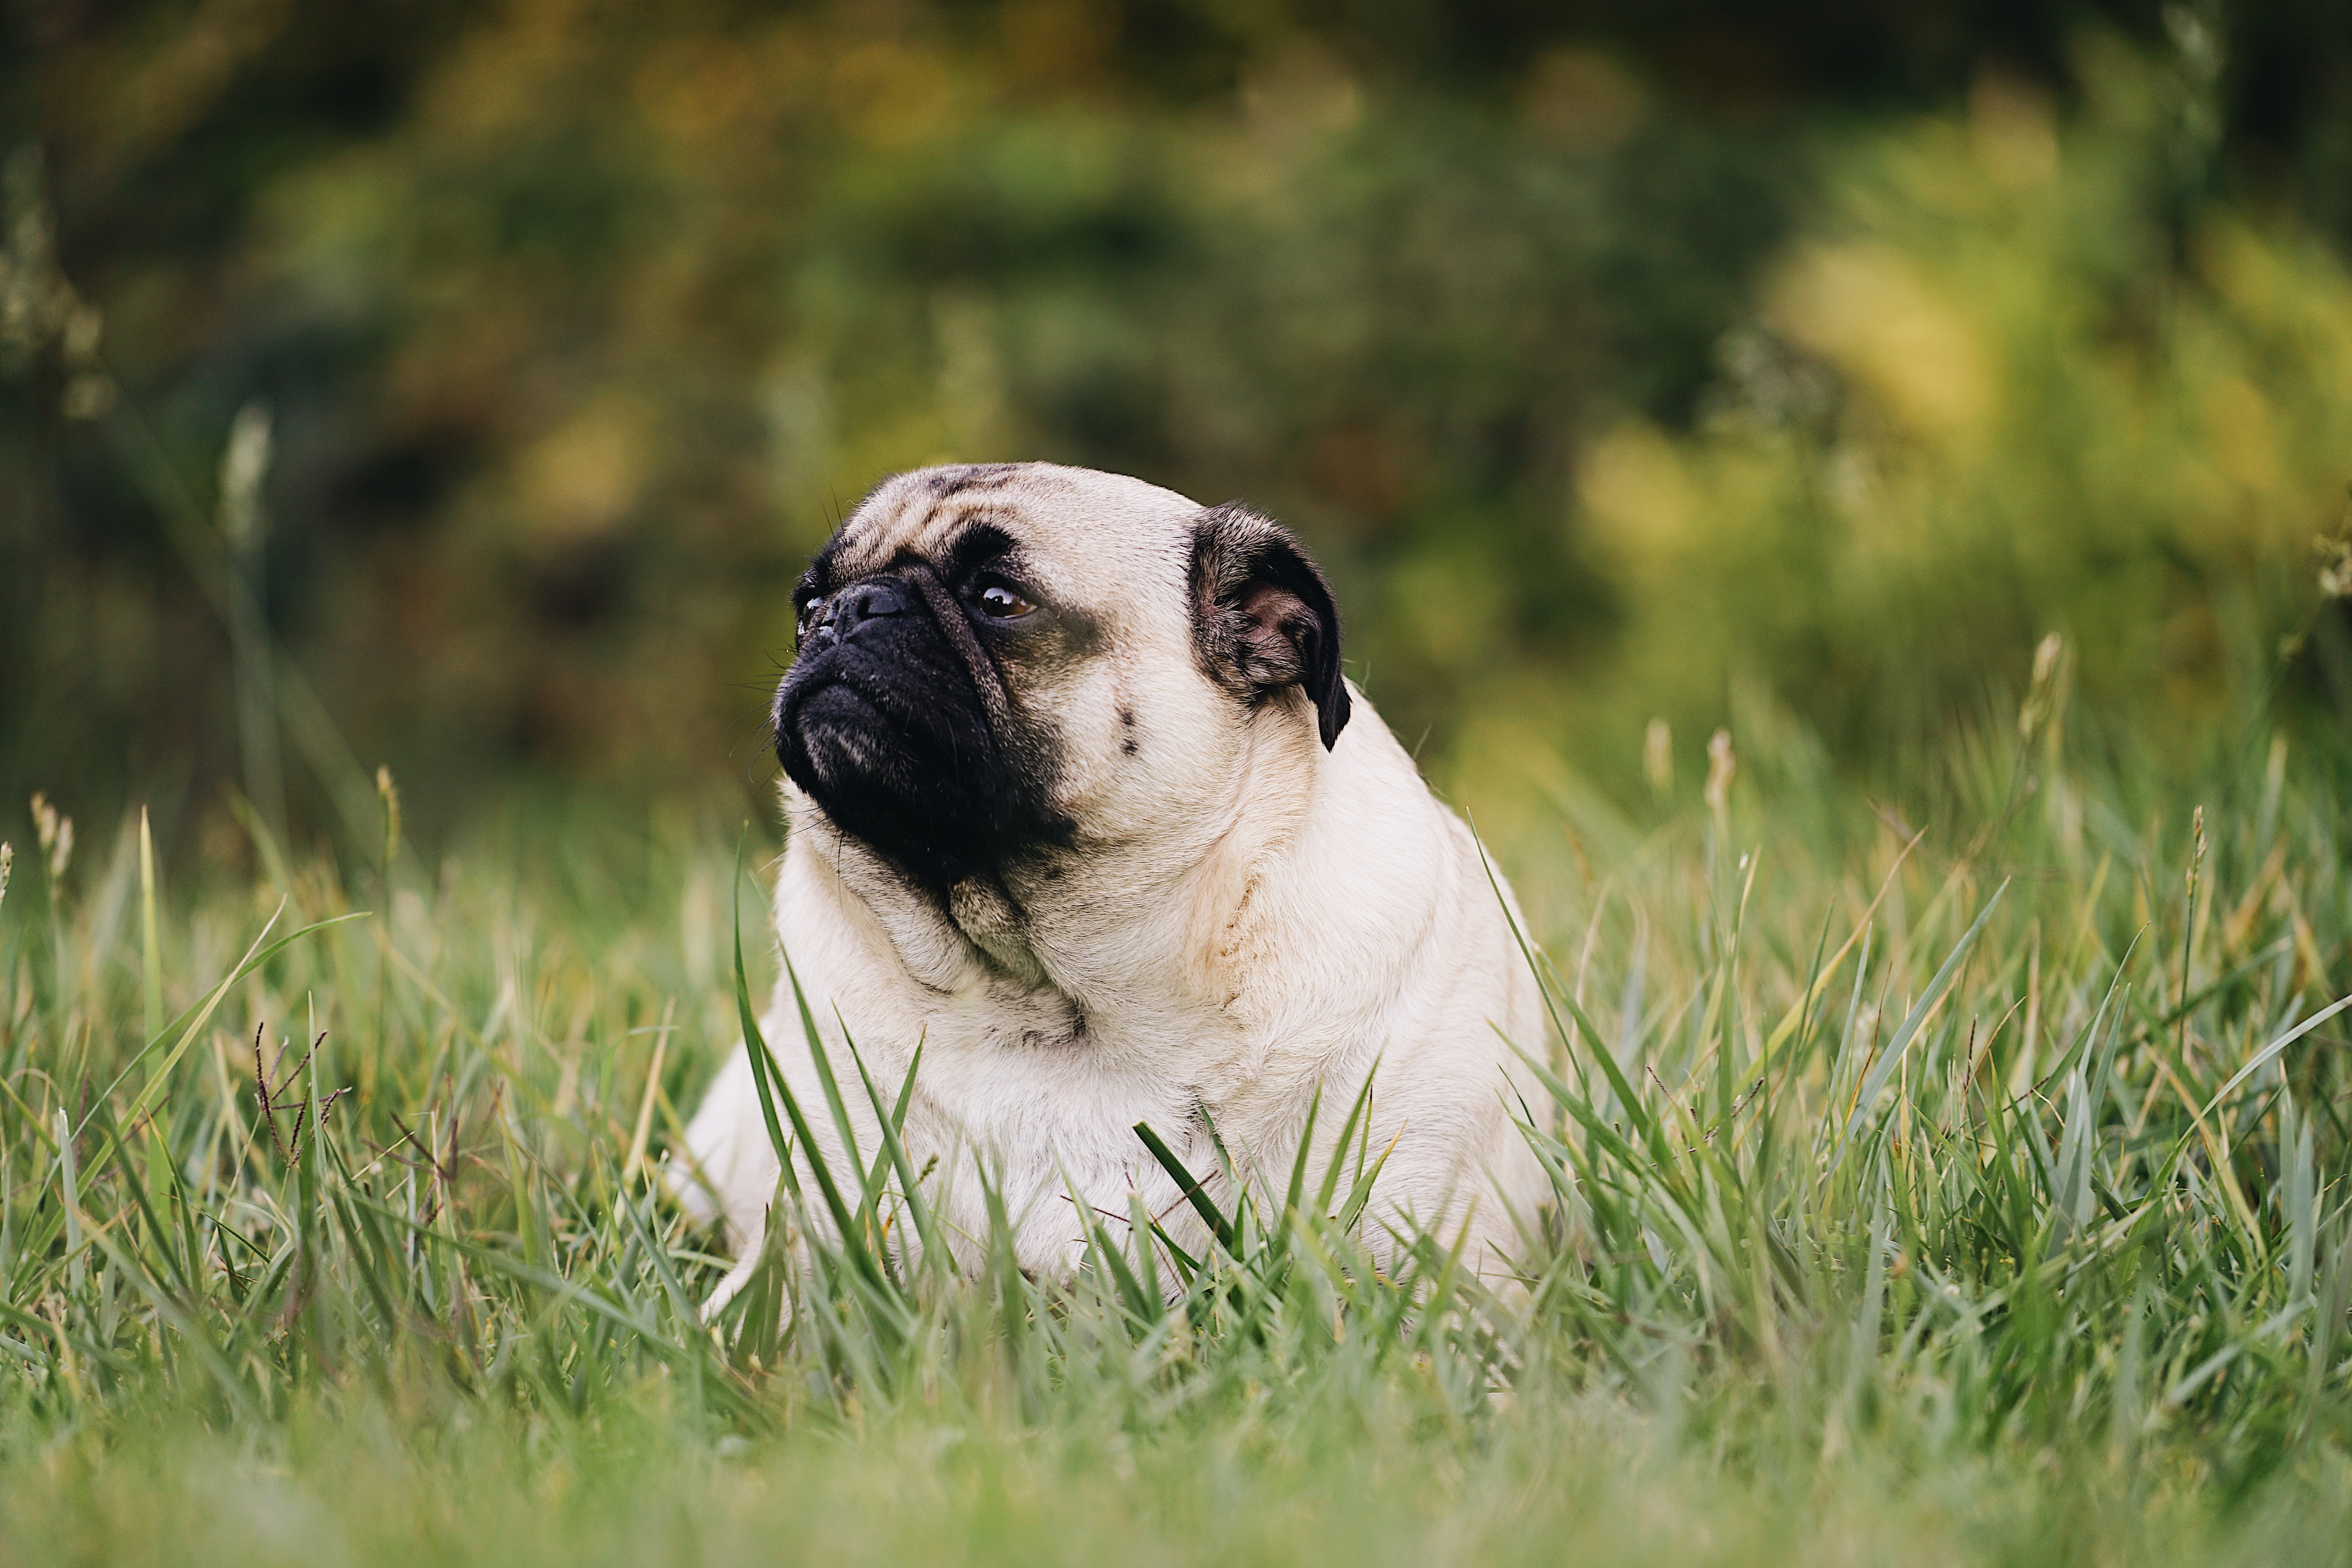 a pug sitting outside